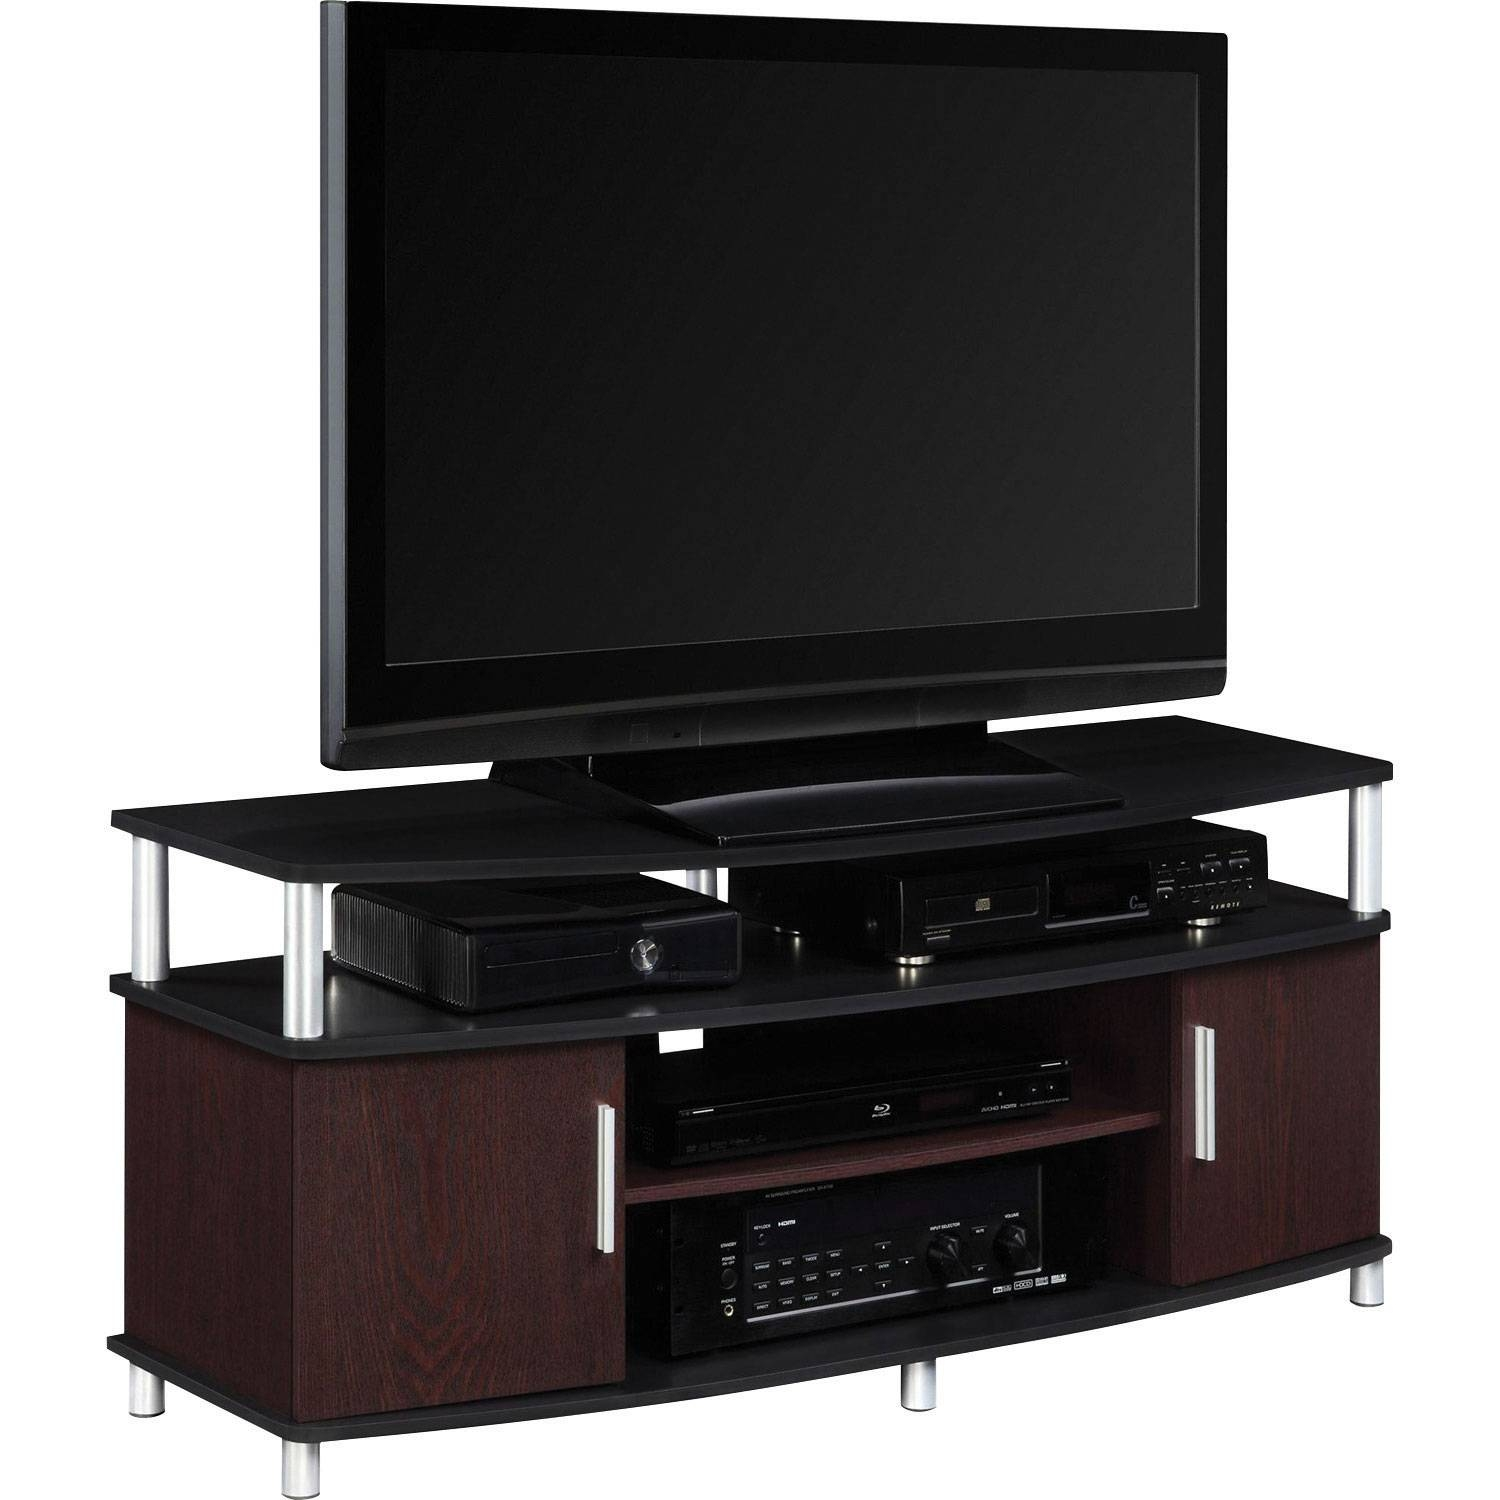 """Dorel Carson 50"""" Tv Stand – Cherry/black : Tv Stands – Best Buy Canada With Tv Stands For 43 Inch Tv (View 14 of 15)"""